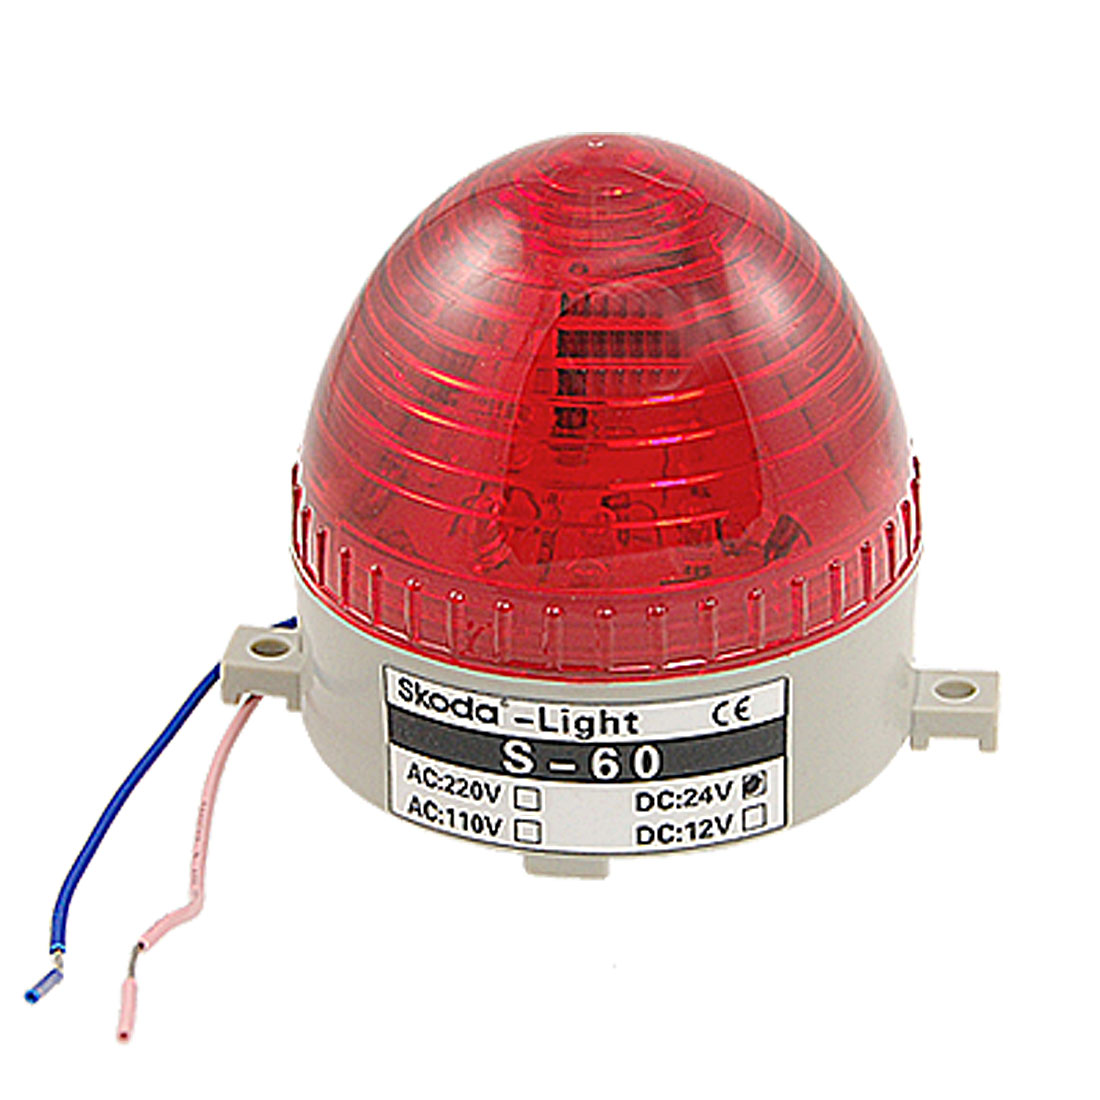 DC 24V Wired Flashing Red LED Light Industrial Warning Alarm Signal Lamp